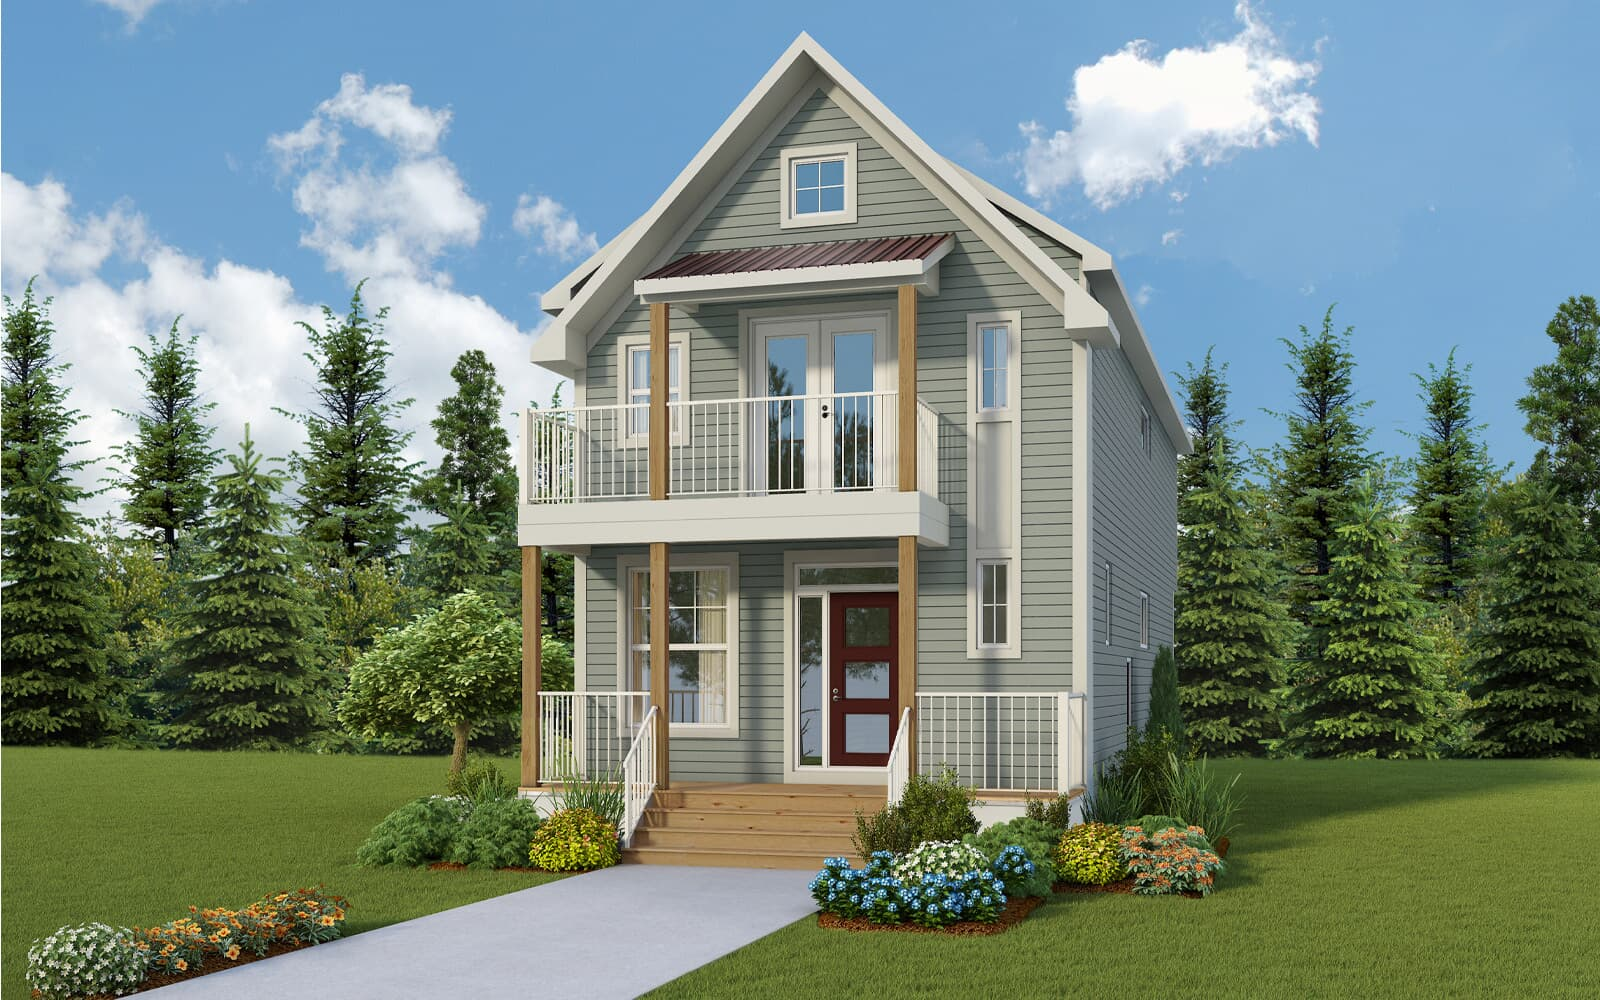 model-84-lv5-farmhouse-carlisleii-calgary